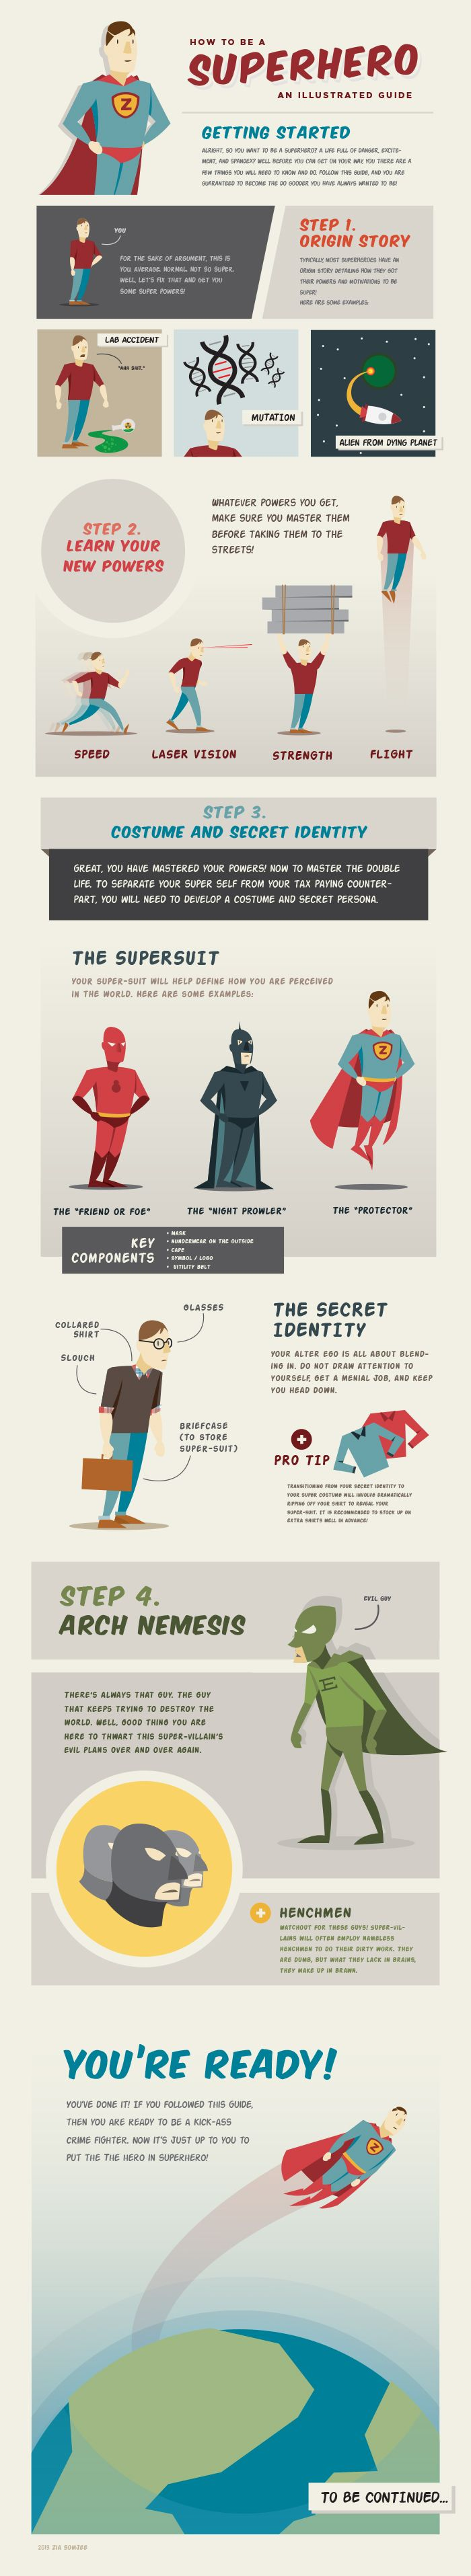 Unique Infographic Design, How To Be A Superhero @holasoyjorge #Infographic #Design (http://www.pinterest.com/aldenchong/)